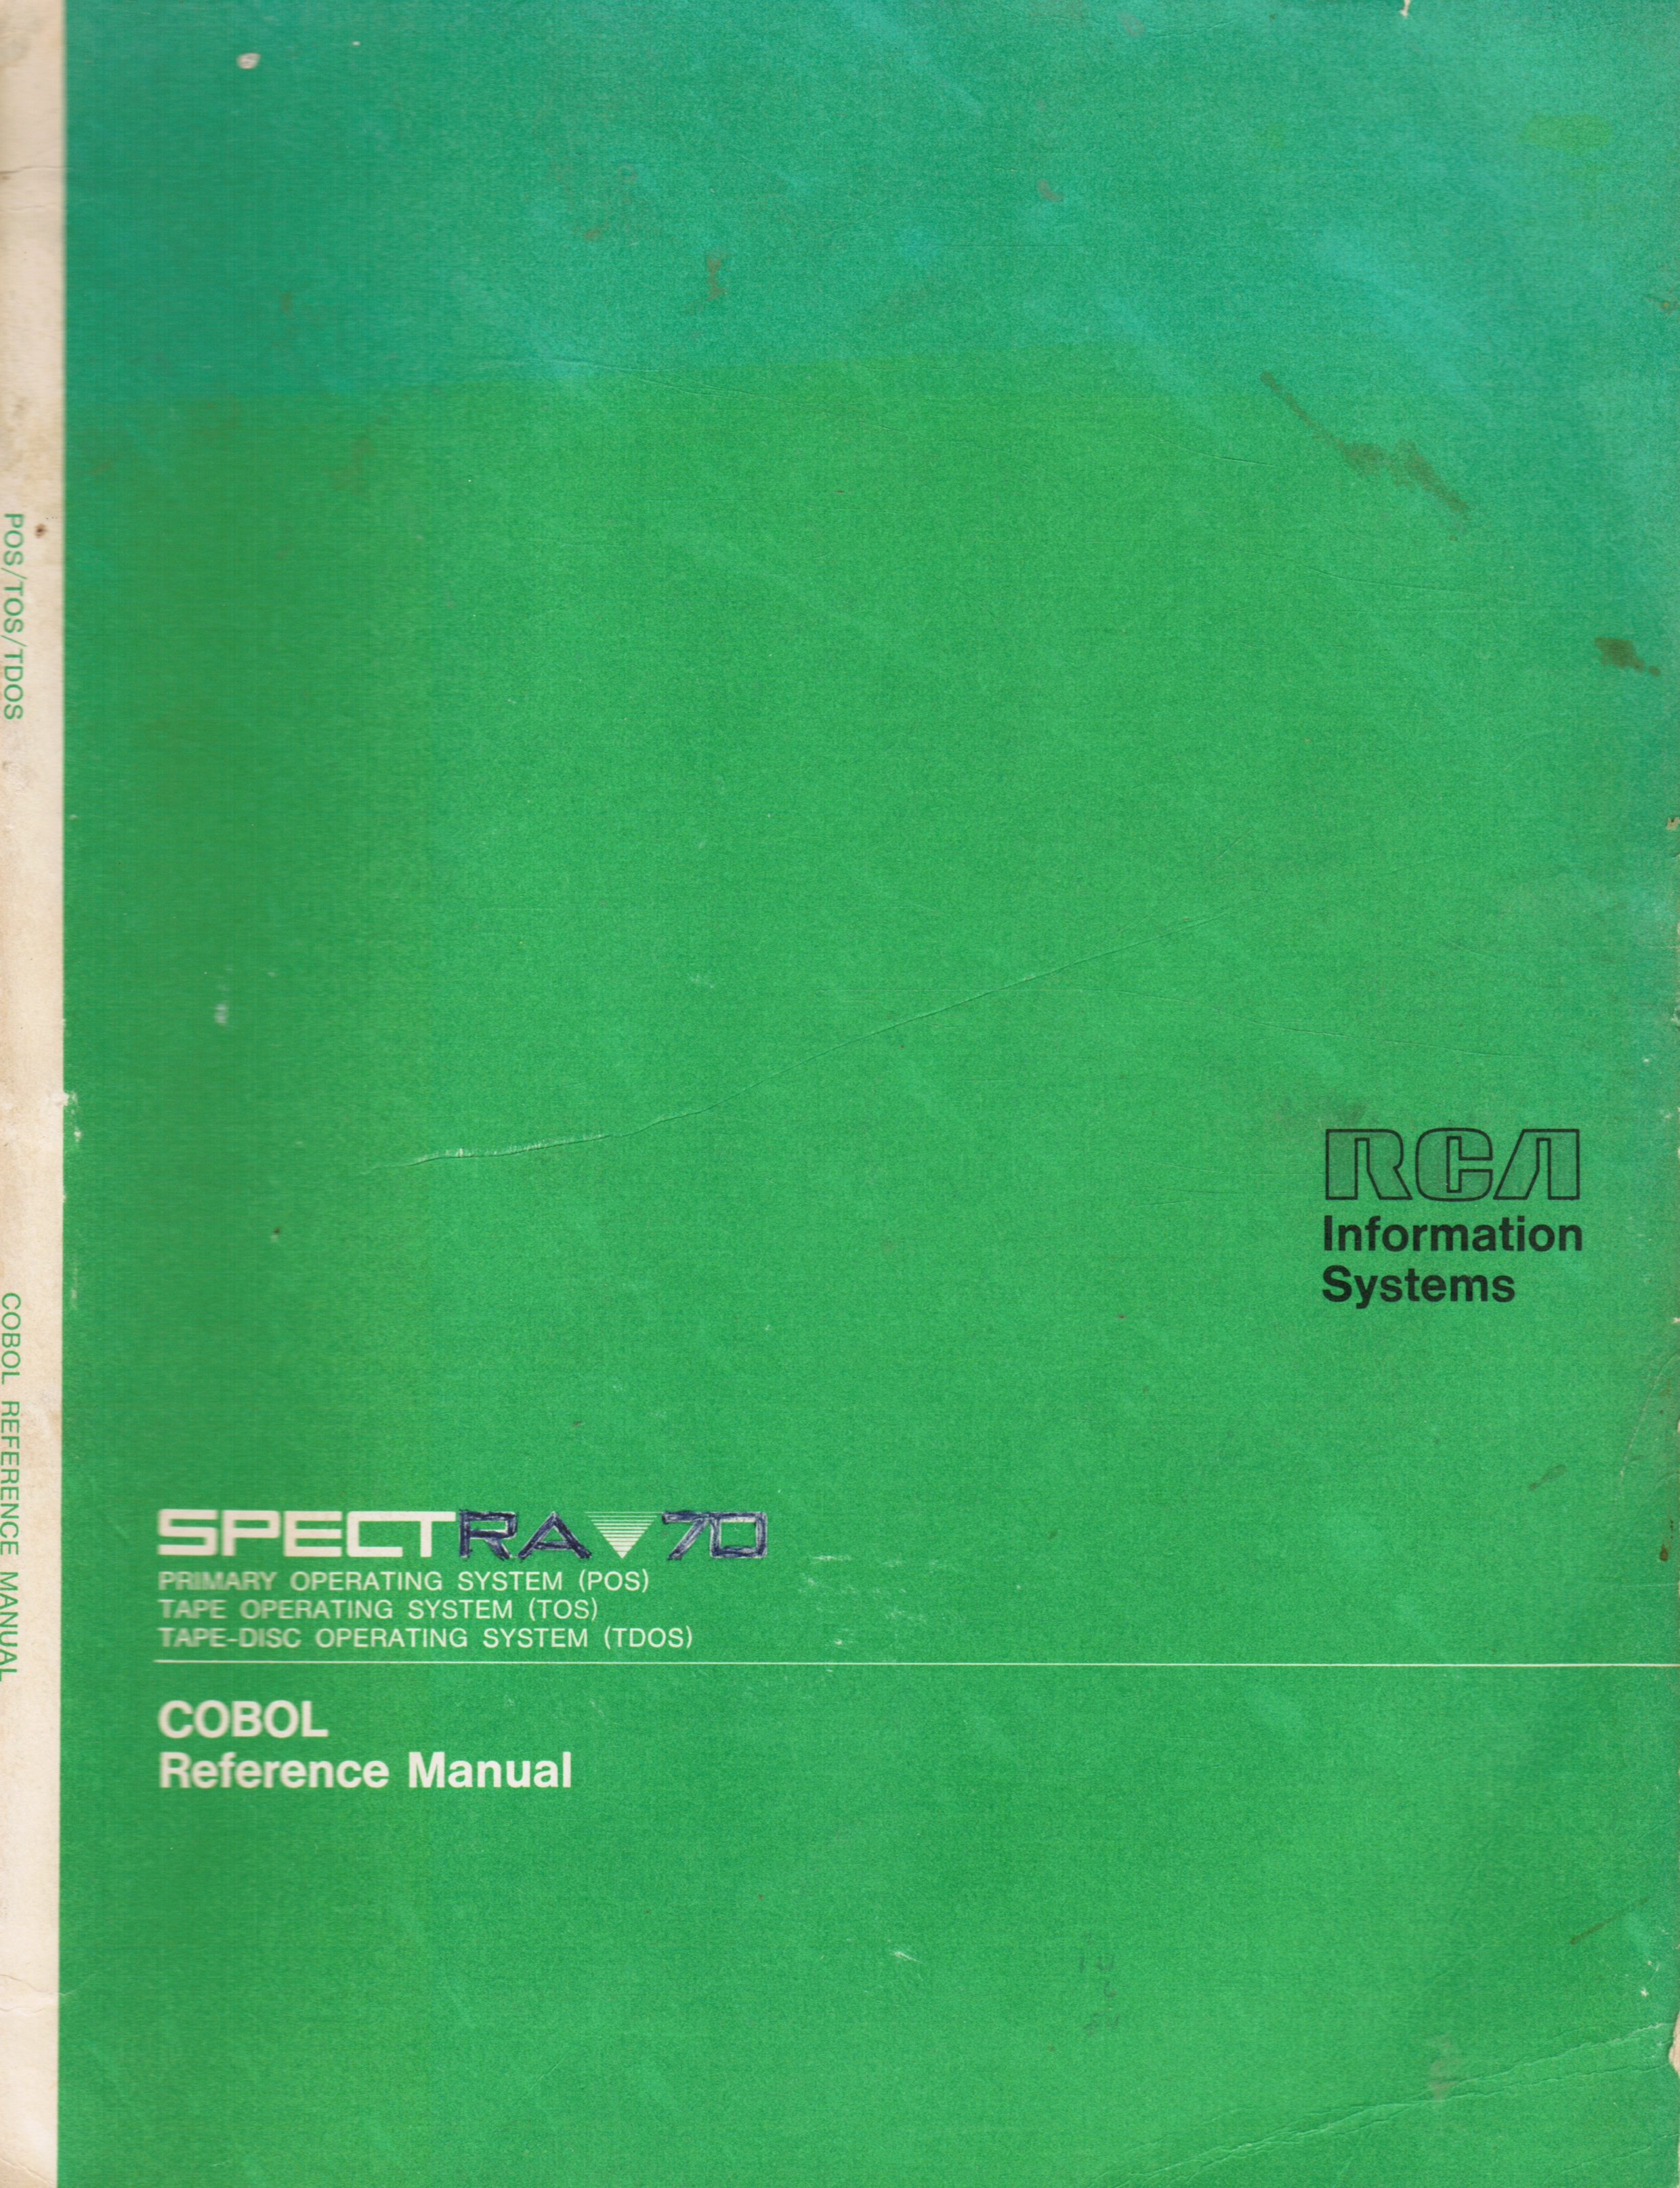 Image for SPECTRA 70: Cobol Reference Manual